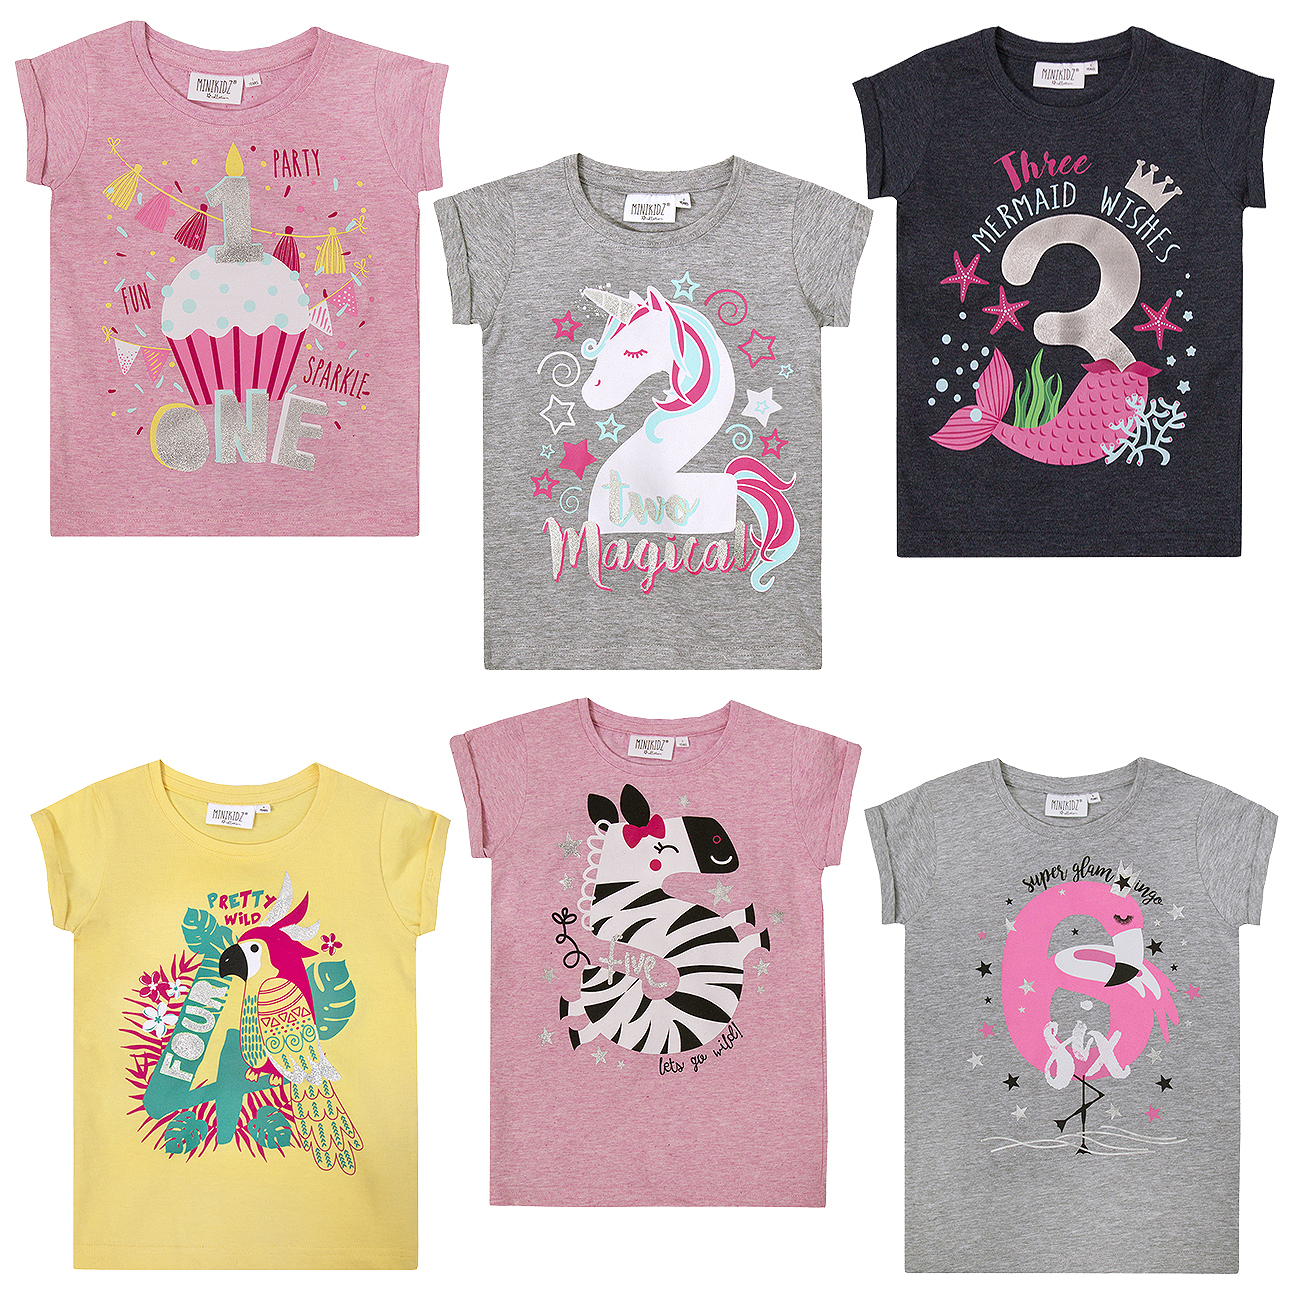 GIRLS PERSONALISED FLORAL PRINT HORSE T-SHIRT CHILDRENS PONY T SHIRT AGES 1-12